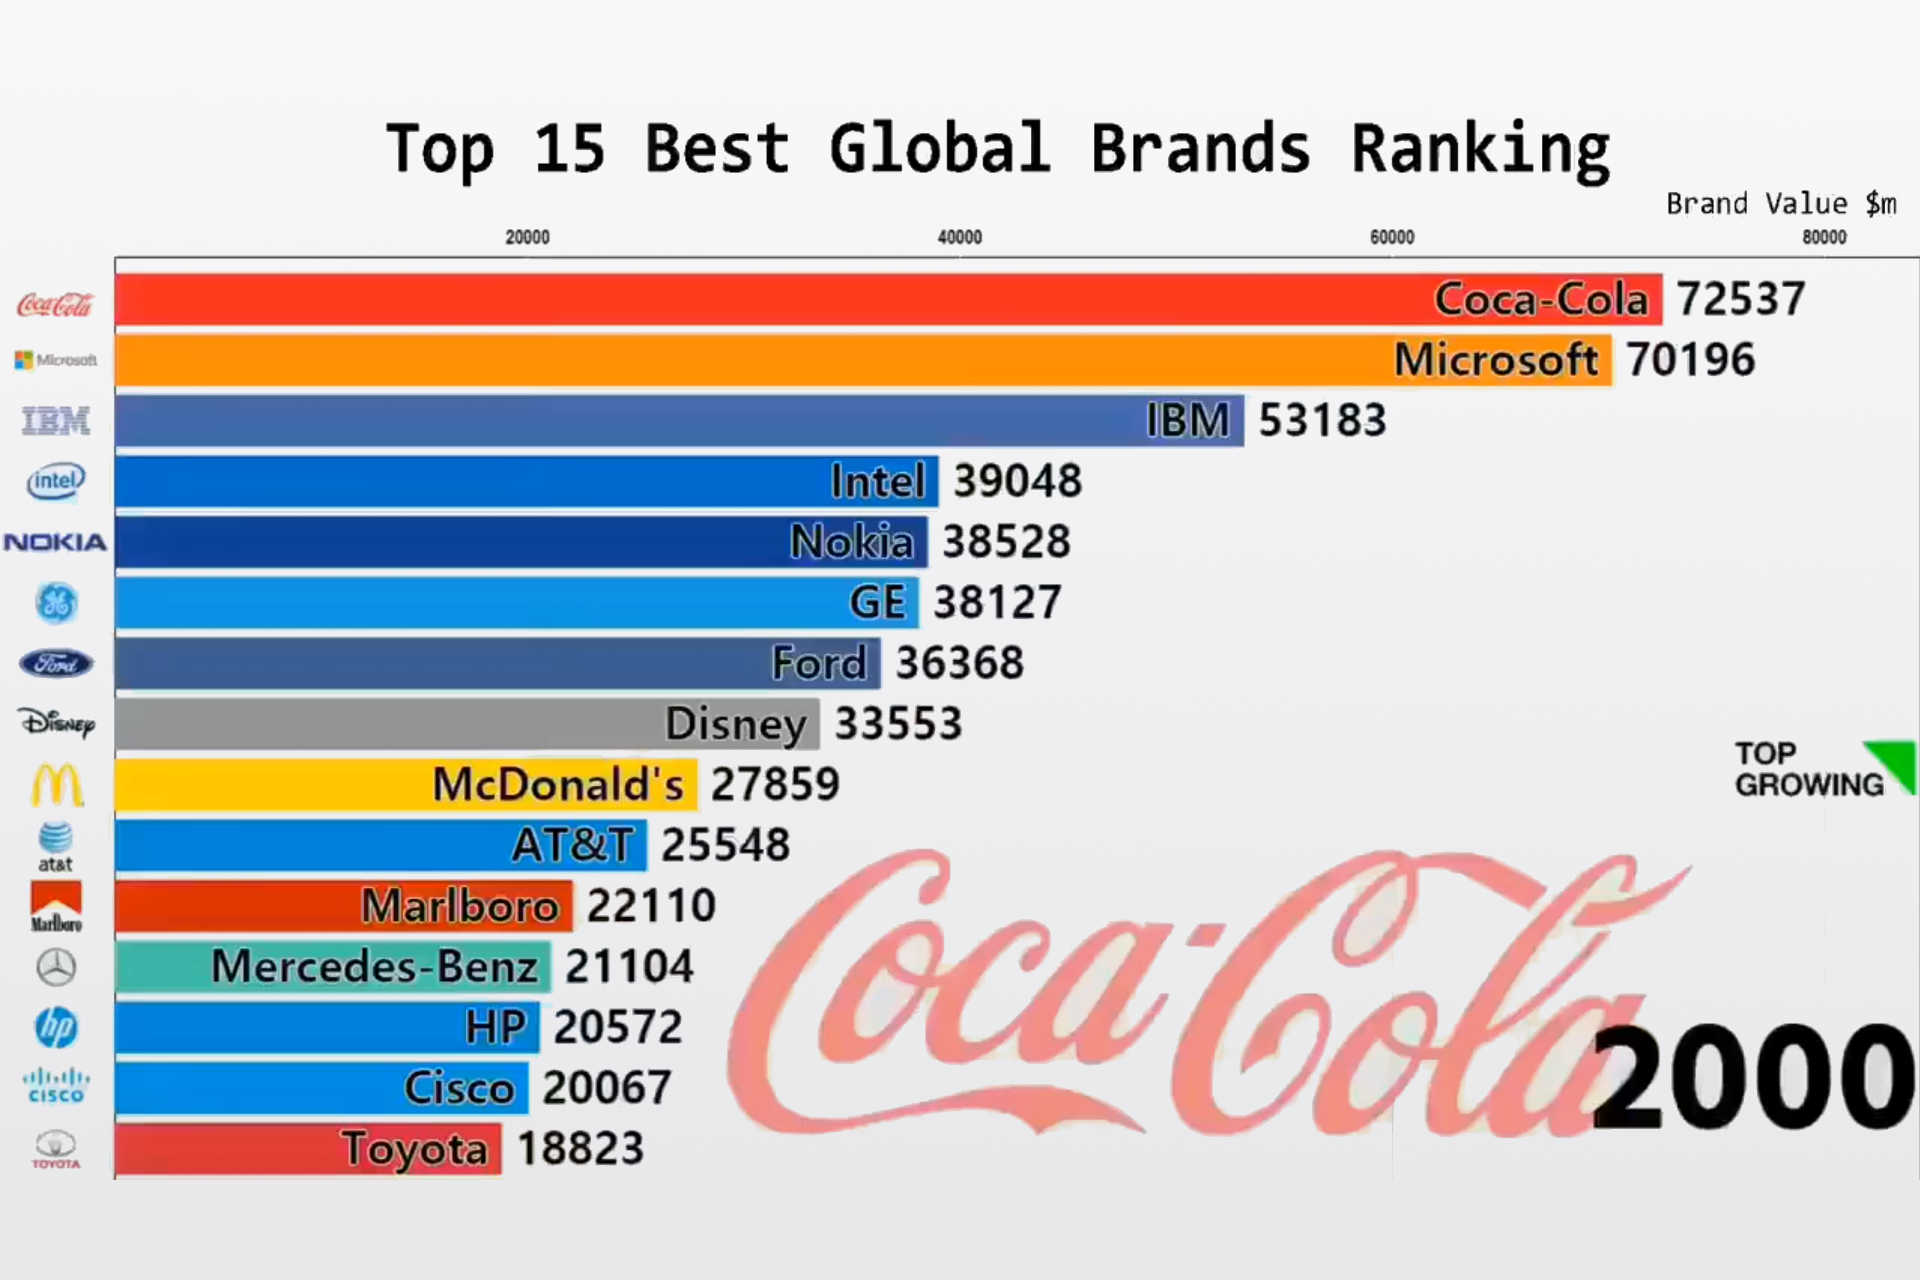 Top 15 global brands ranking from 2000 to 2018